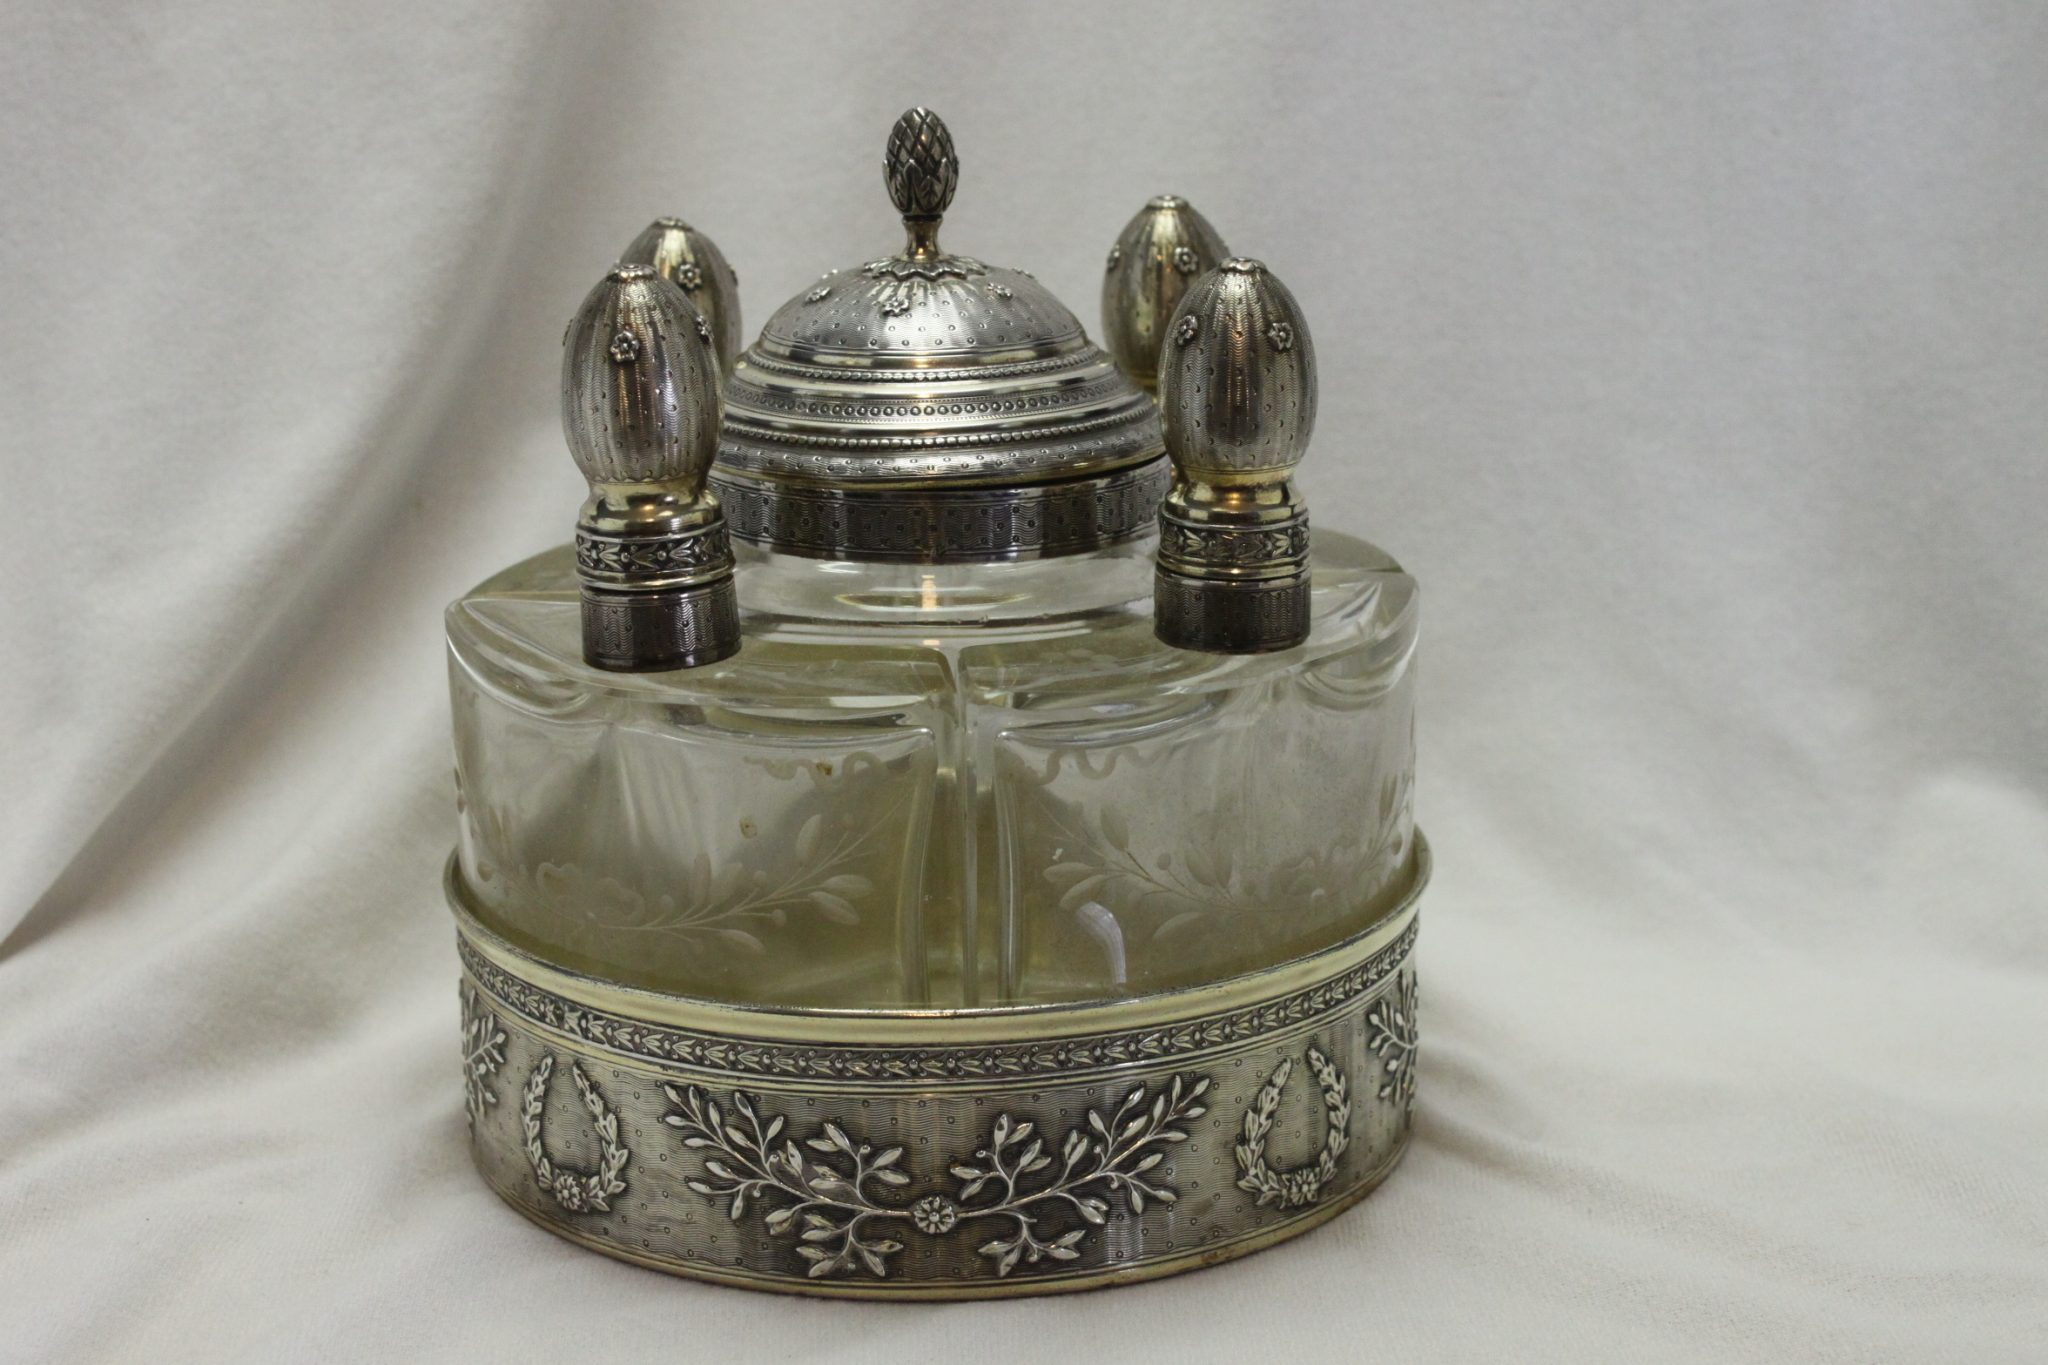 French silver gilt scent bottle stand